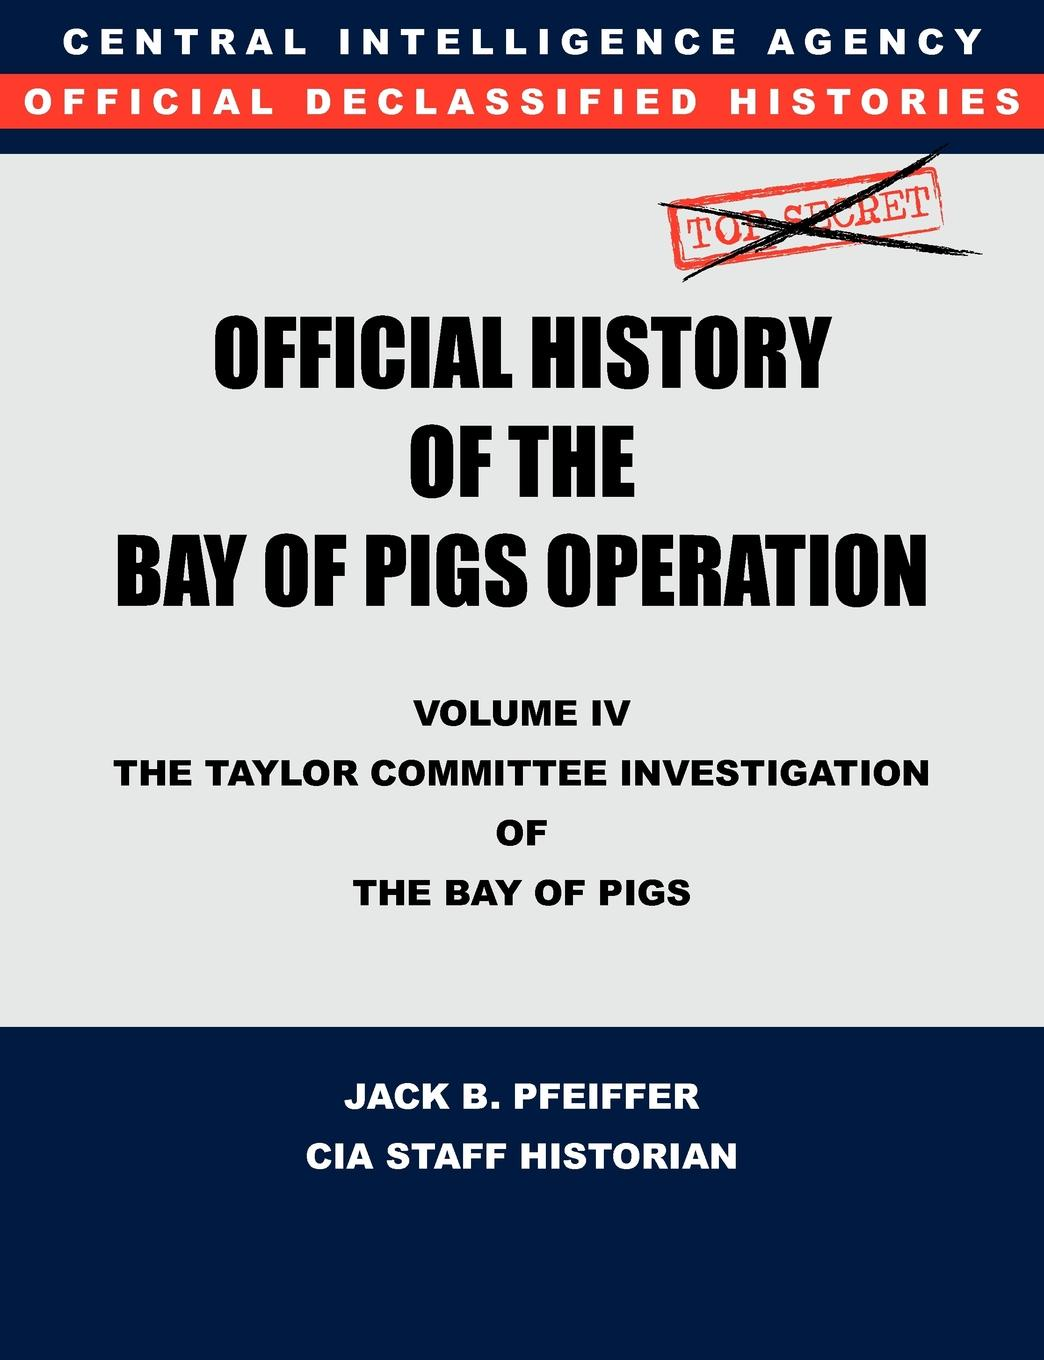 цена CIA History Office Staff, Jack B. Pfeiffer CIA Official History of the Bay of Pigs Invasion, Volume IV. The Taylor Committee Investigation of the Bay of Pigs онлайн в 2017 году